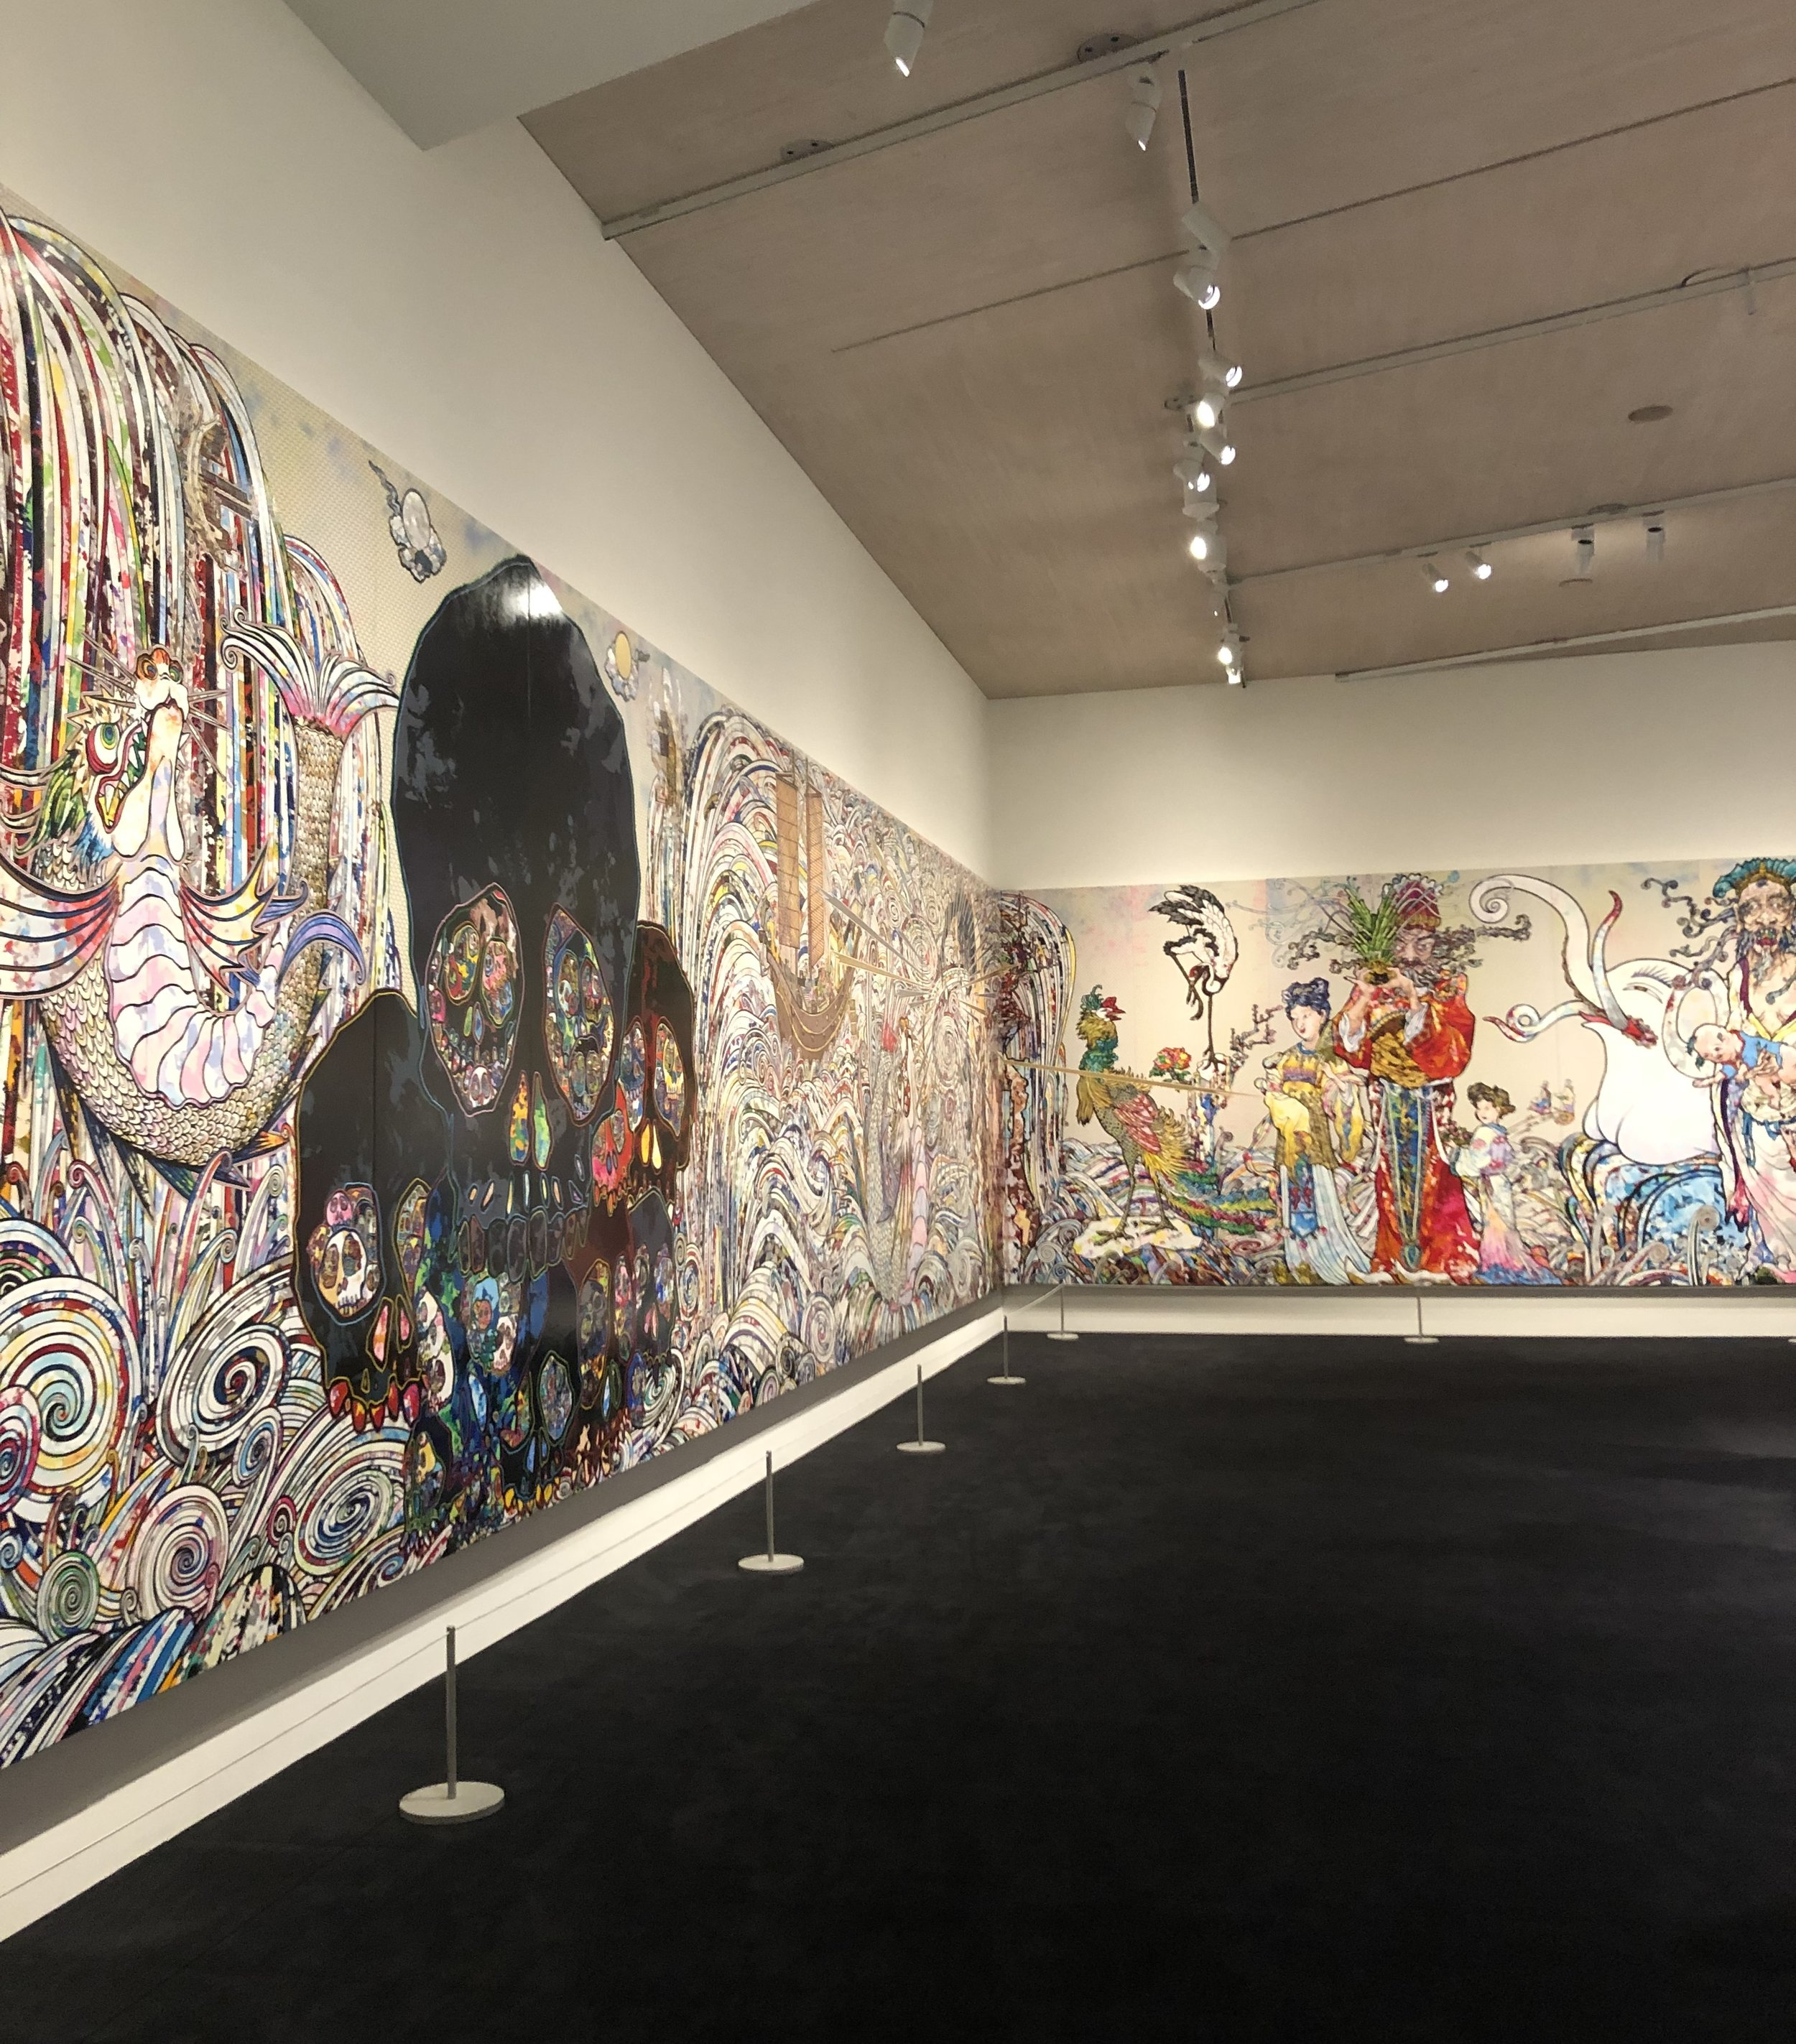 "Takashi Murakami's giant 2014 painting ""In the Land of the Dead, Stepping on the Tail of a Rainbow"" at the National Gallery of Art."